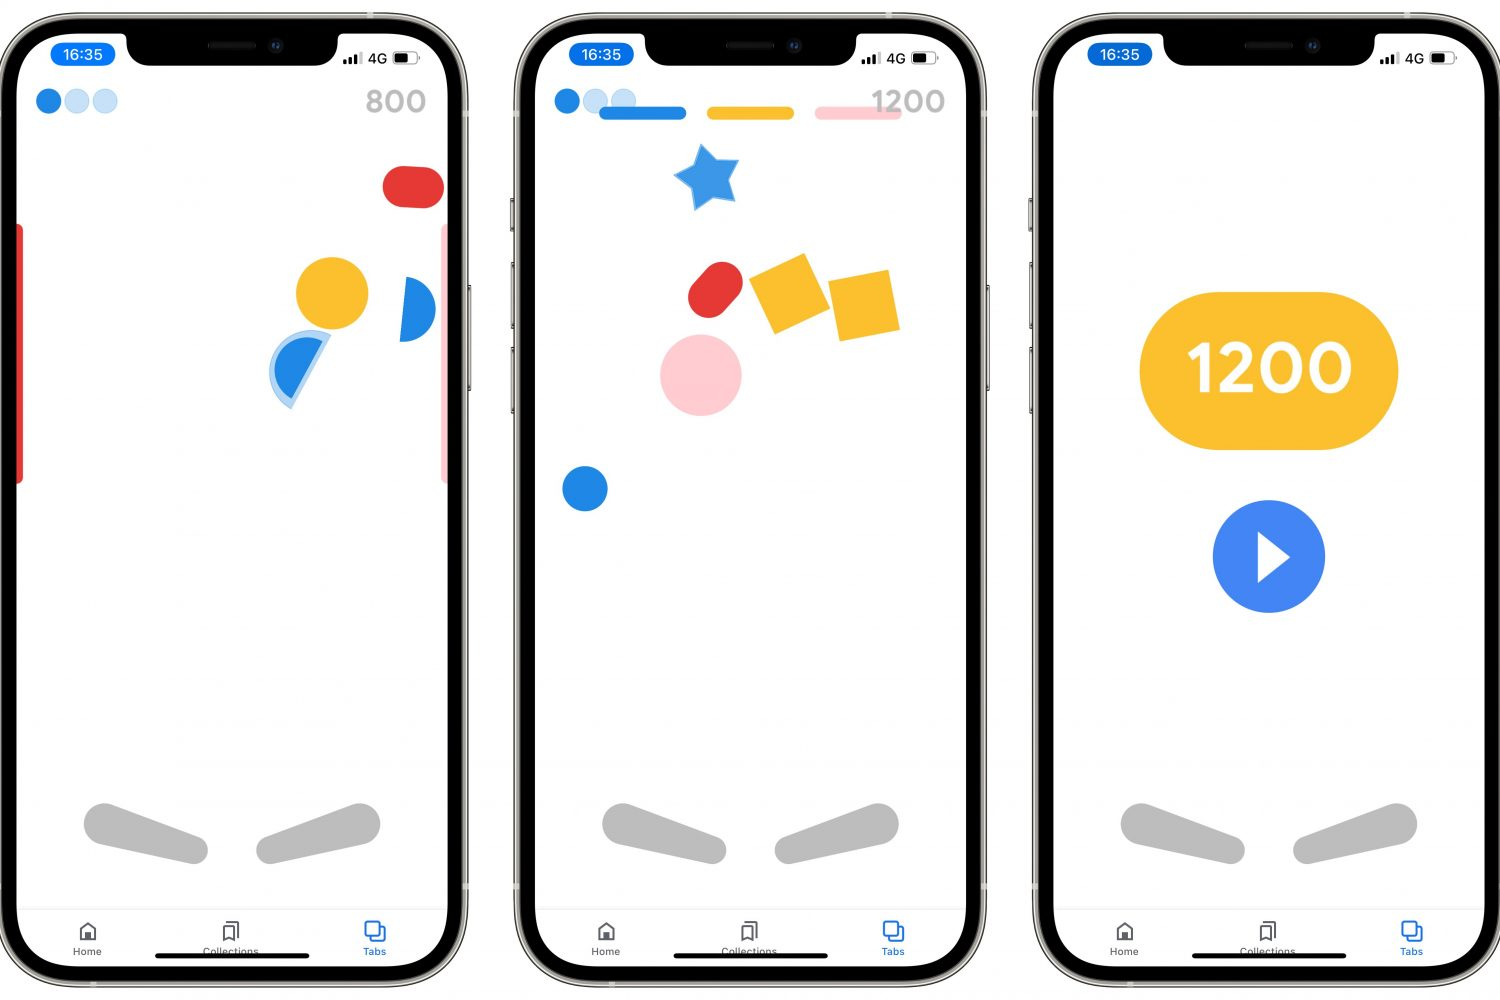 Screenshots showing Google's Easter egg pinball game in its iOS app on iPhone